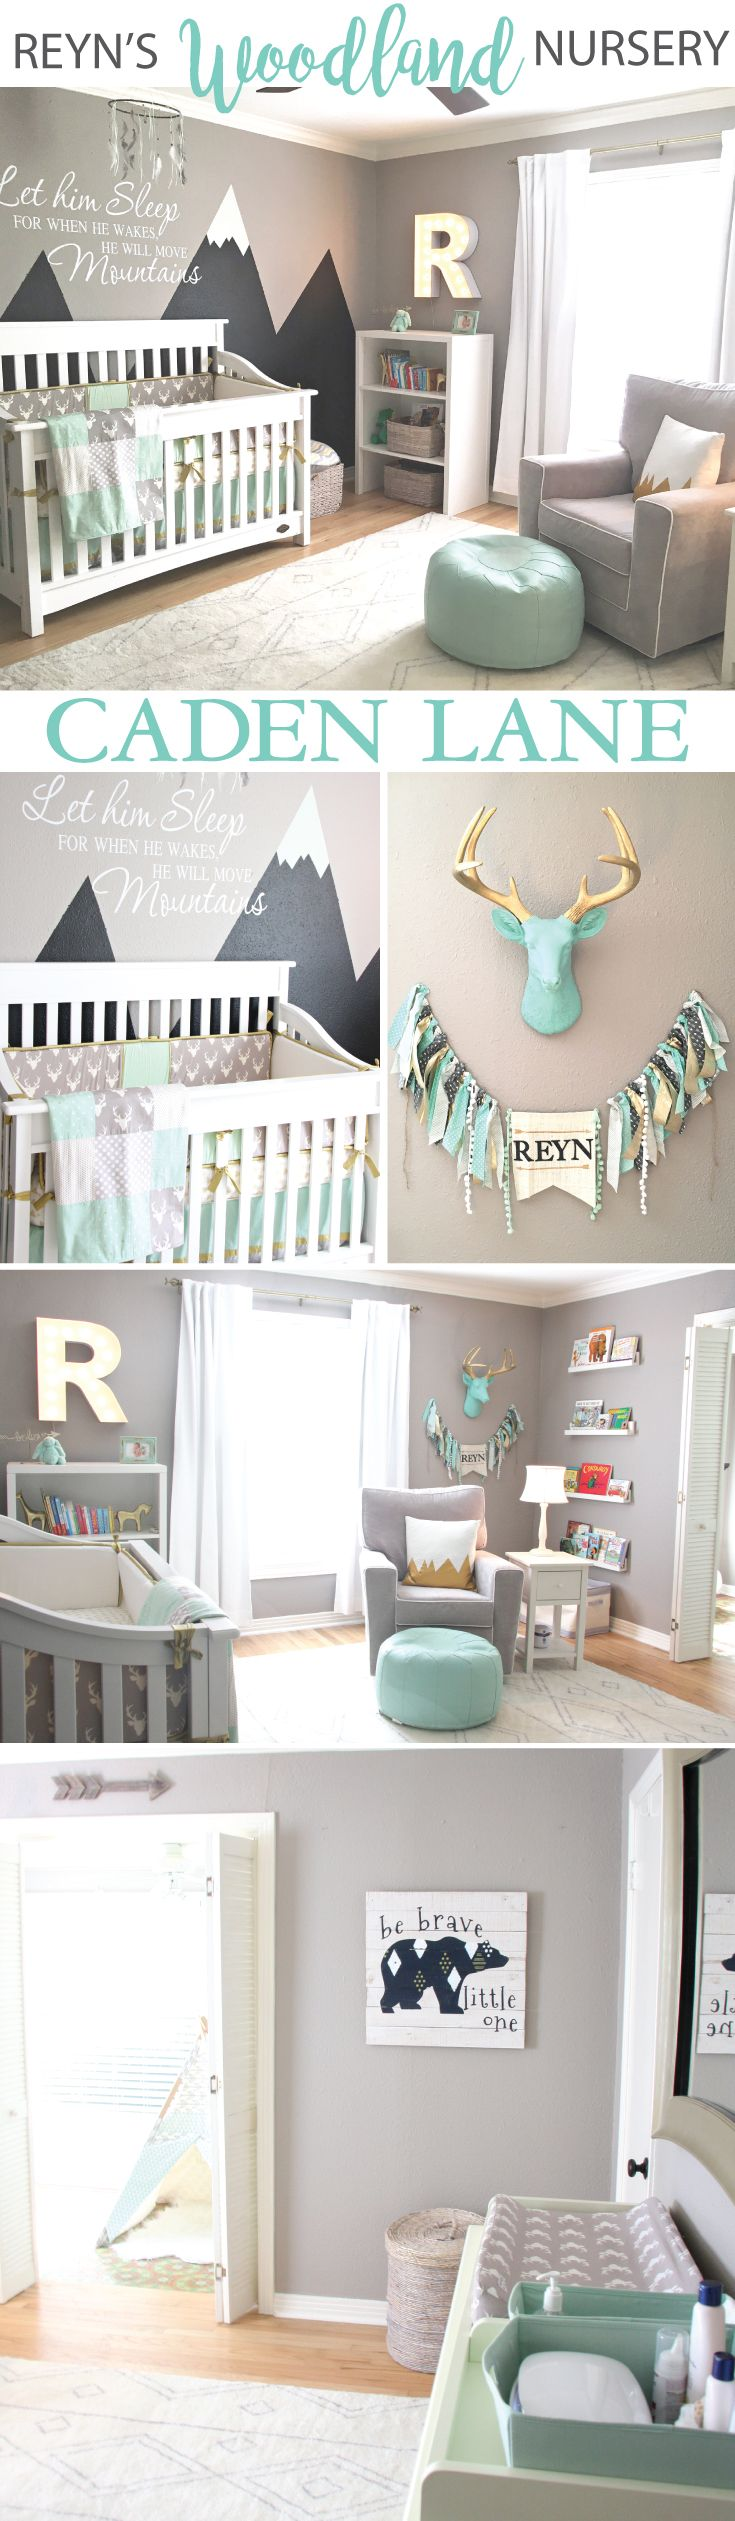 Best 25 baby boy rooms ideas on pinterest baby room for Baby boy bedroom decoration